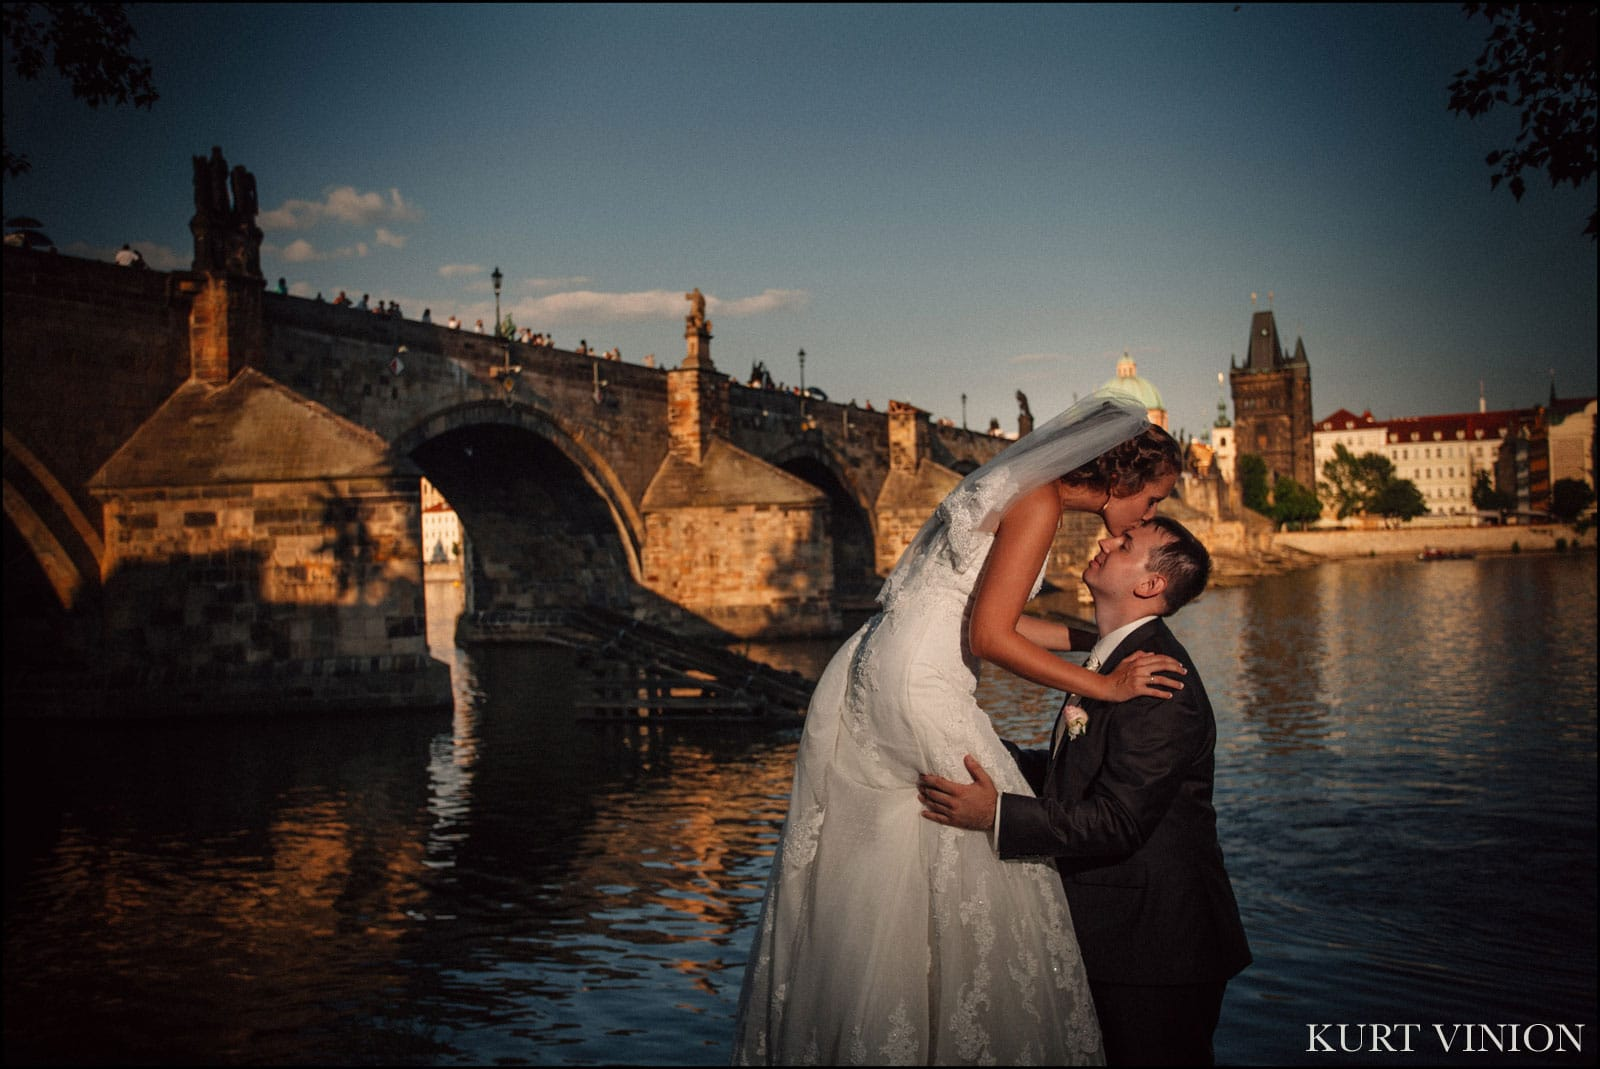 Castle Konopiste wedding / Oksana & Vladislav wedding day photography at the Charles Bridge